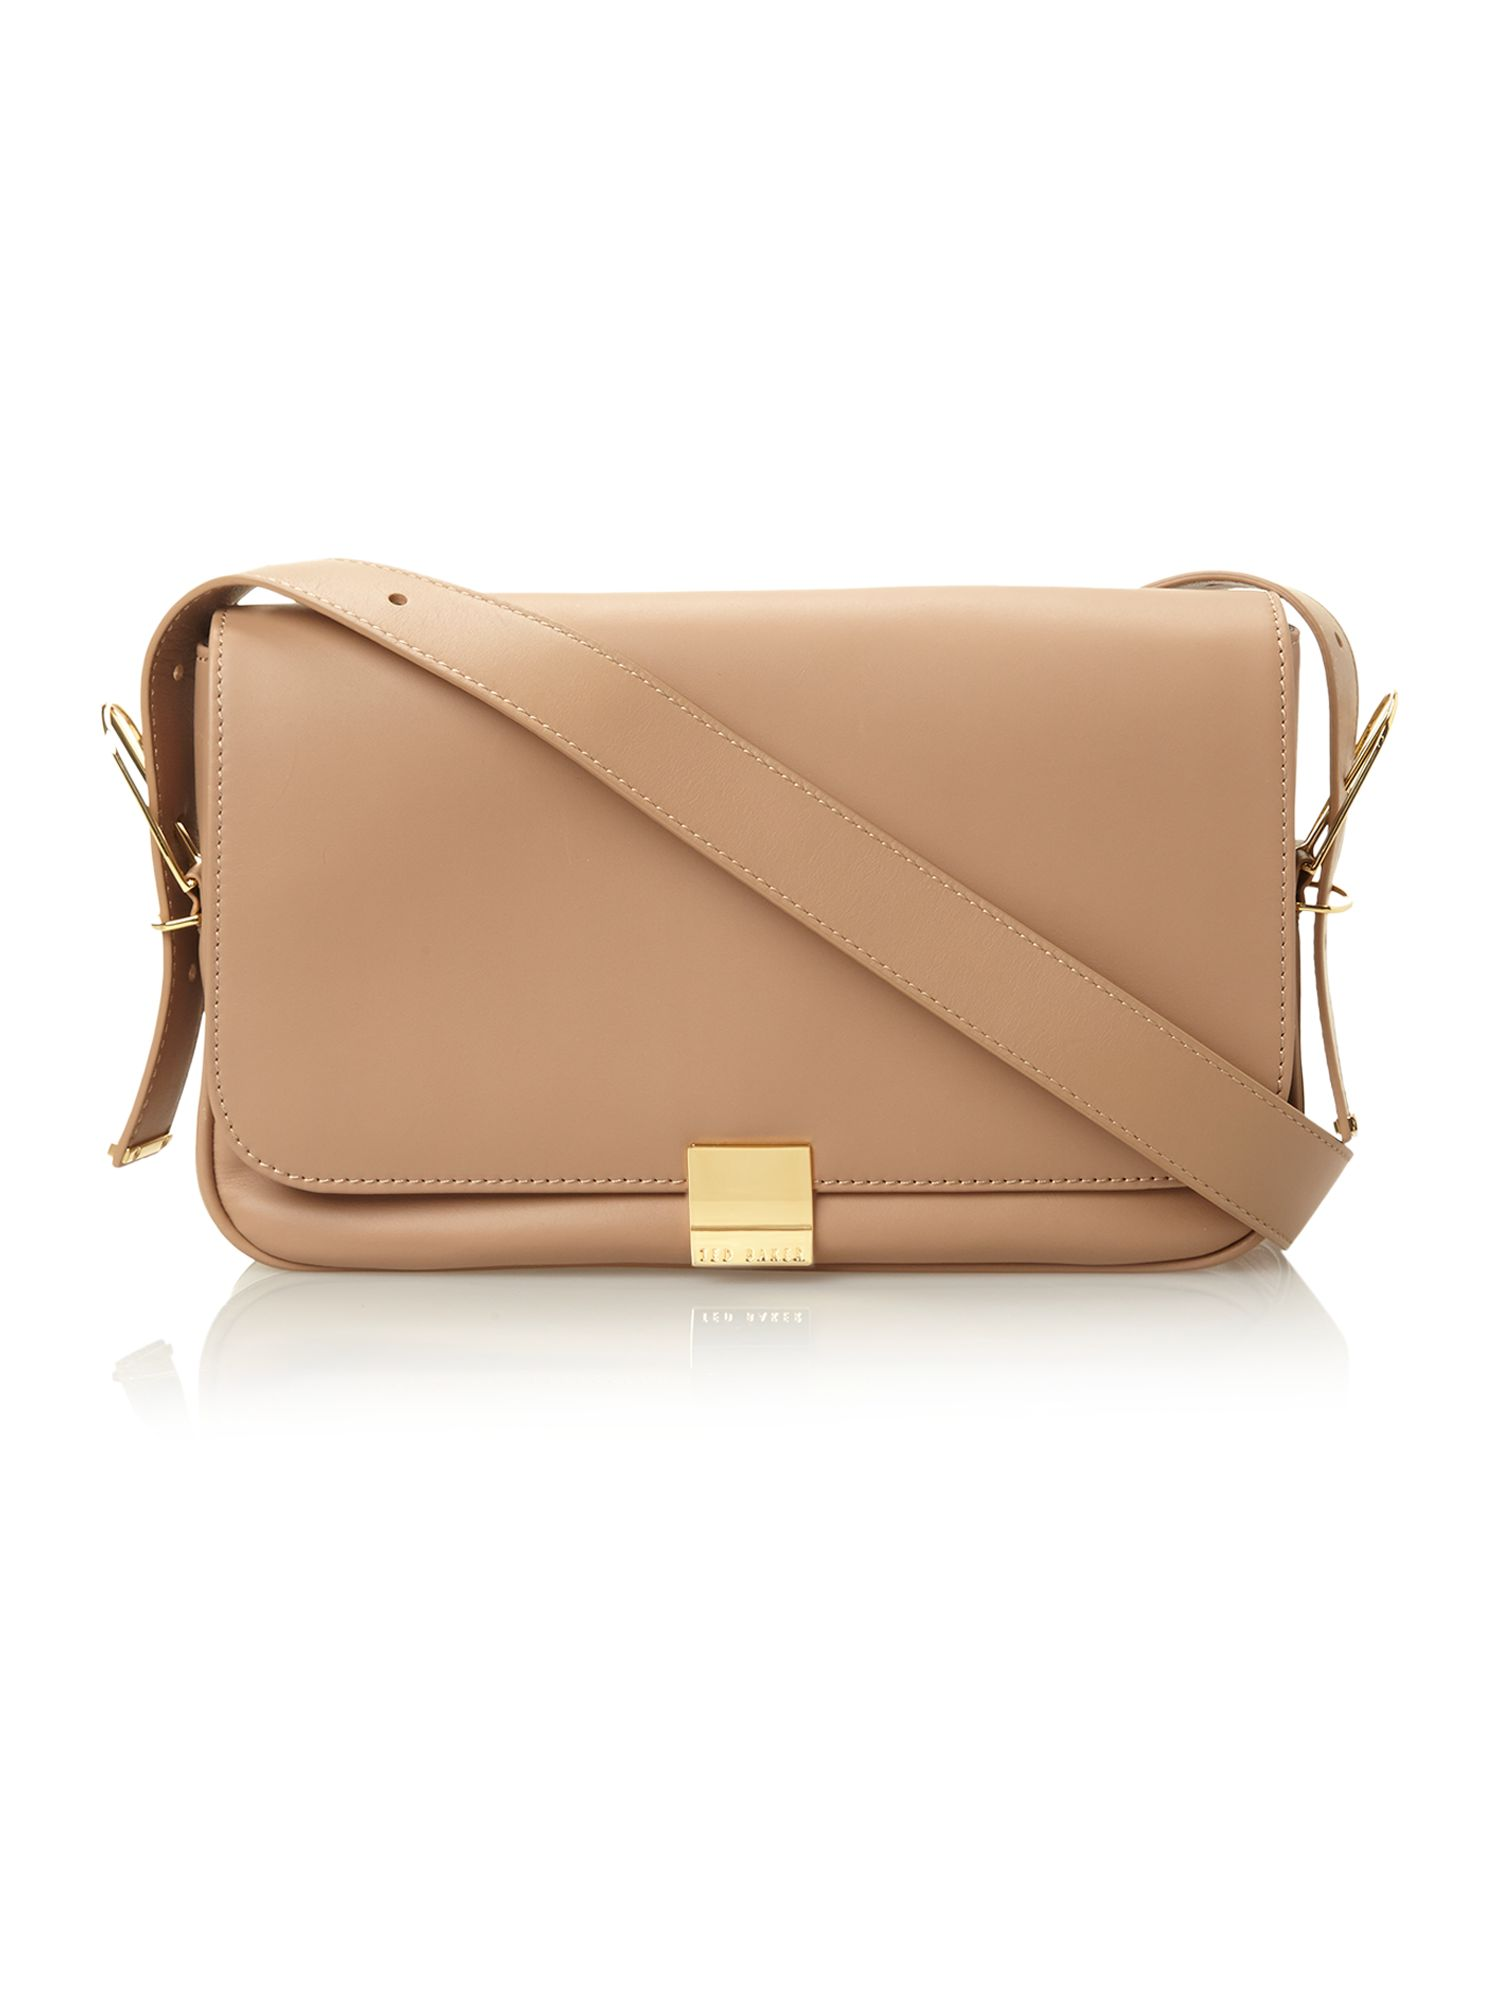 Large nude cross body bag